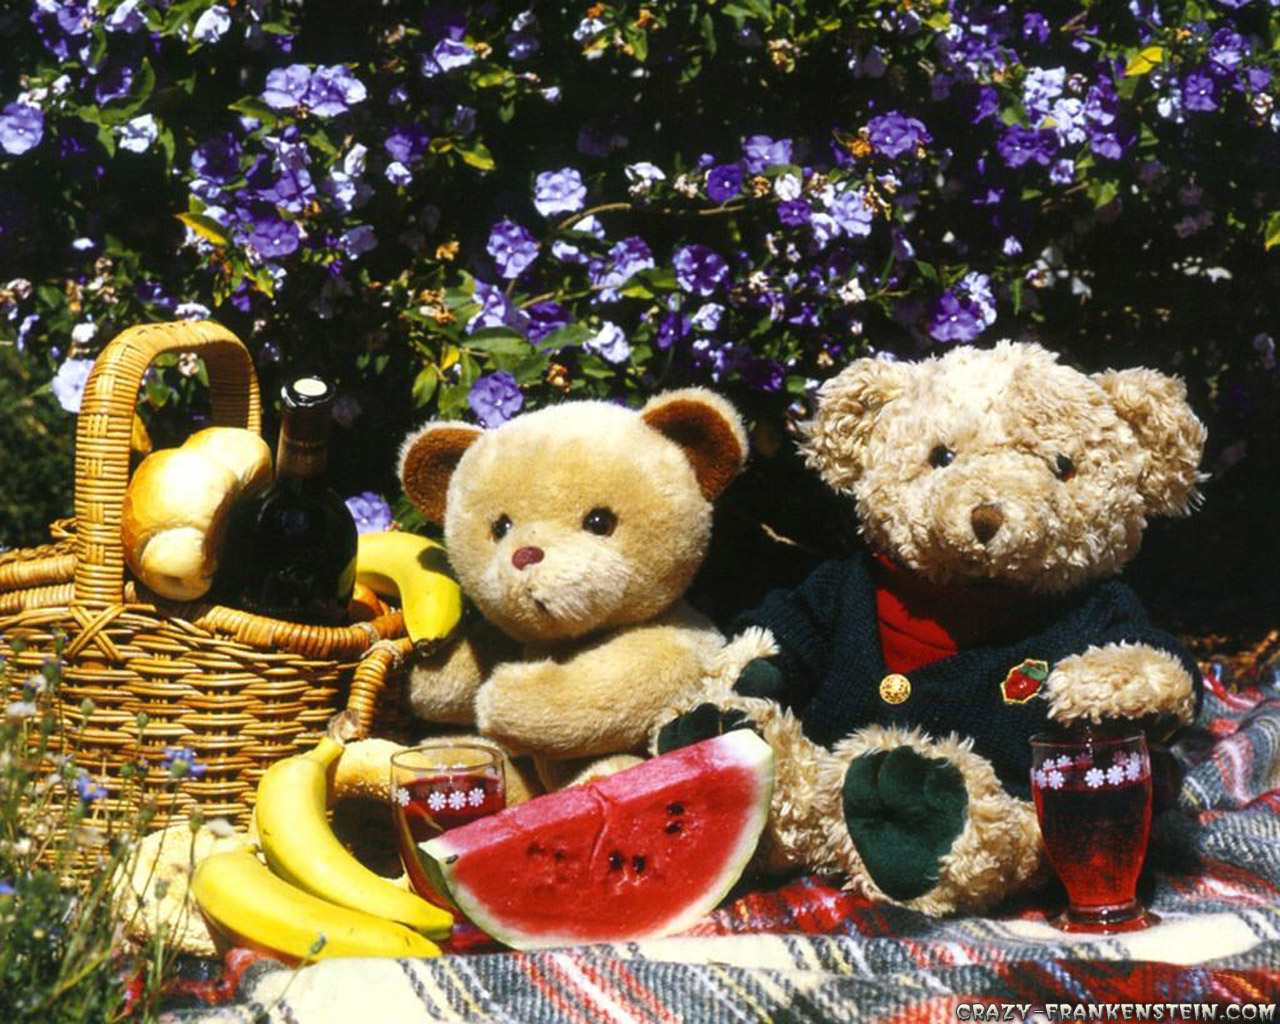 stuffed animals images teddy bears hd wallpaper and background